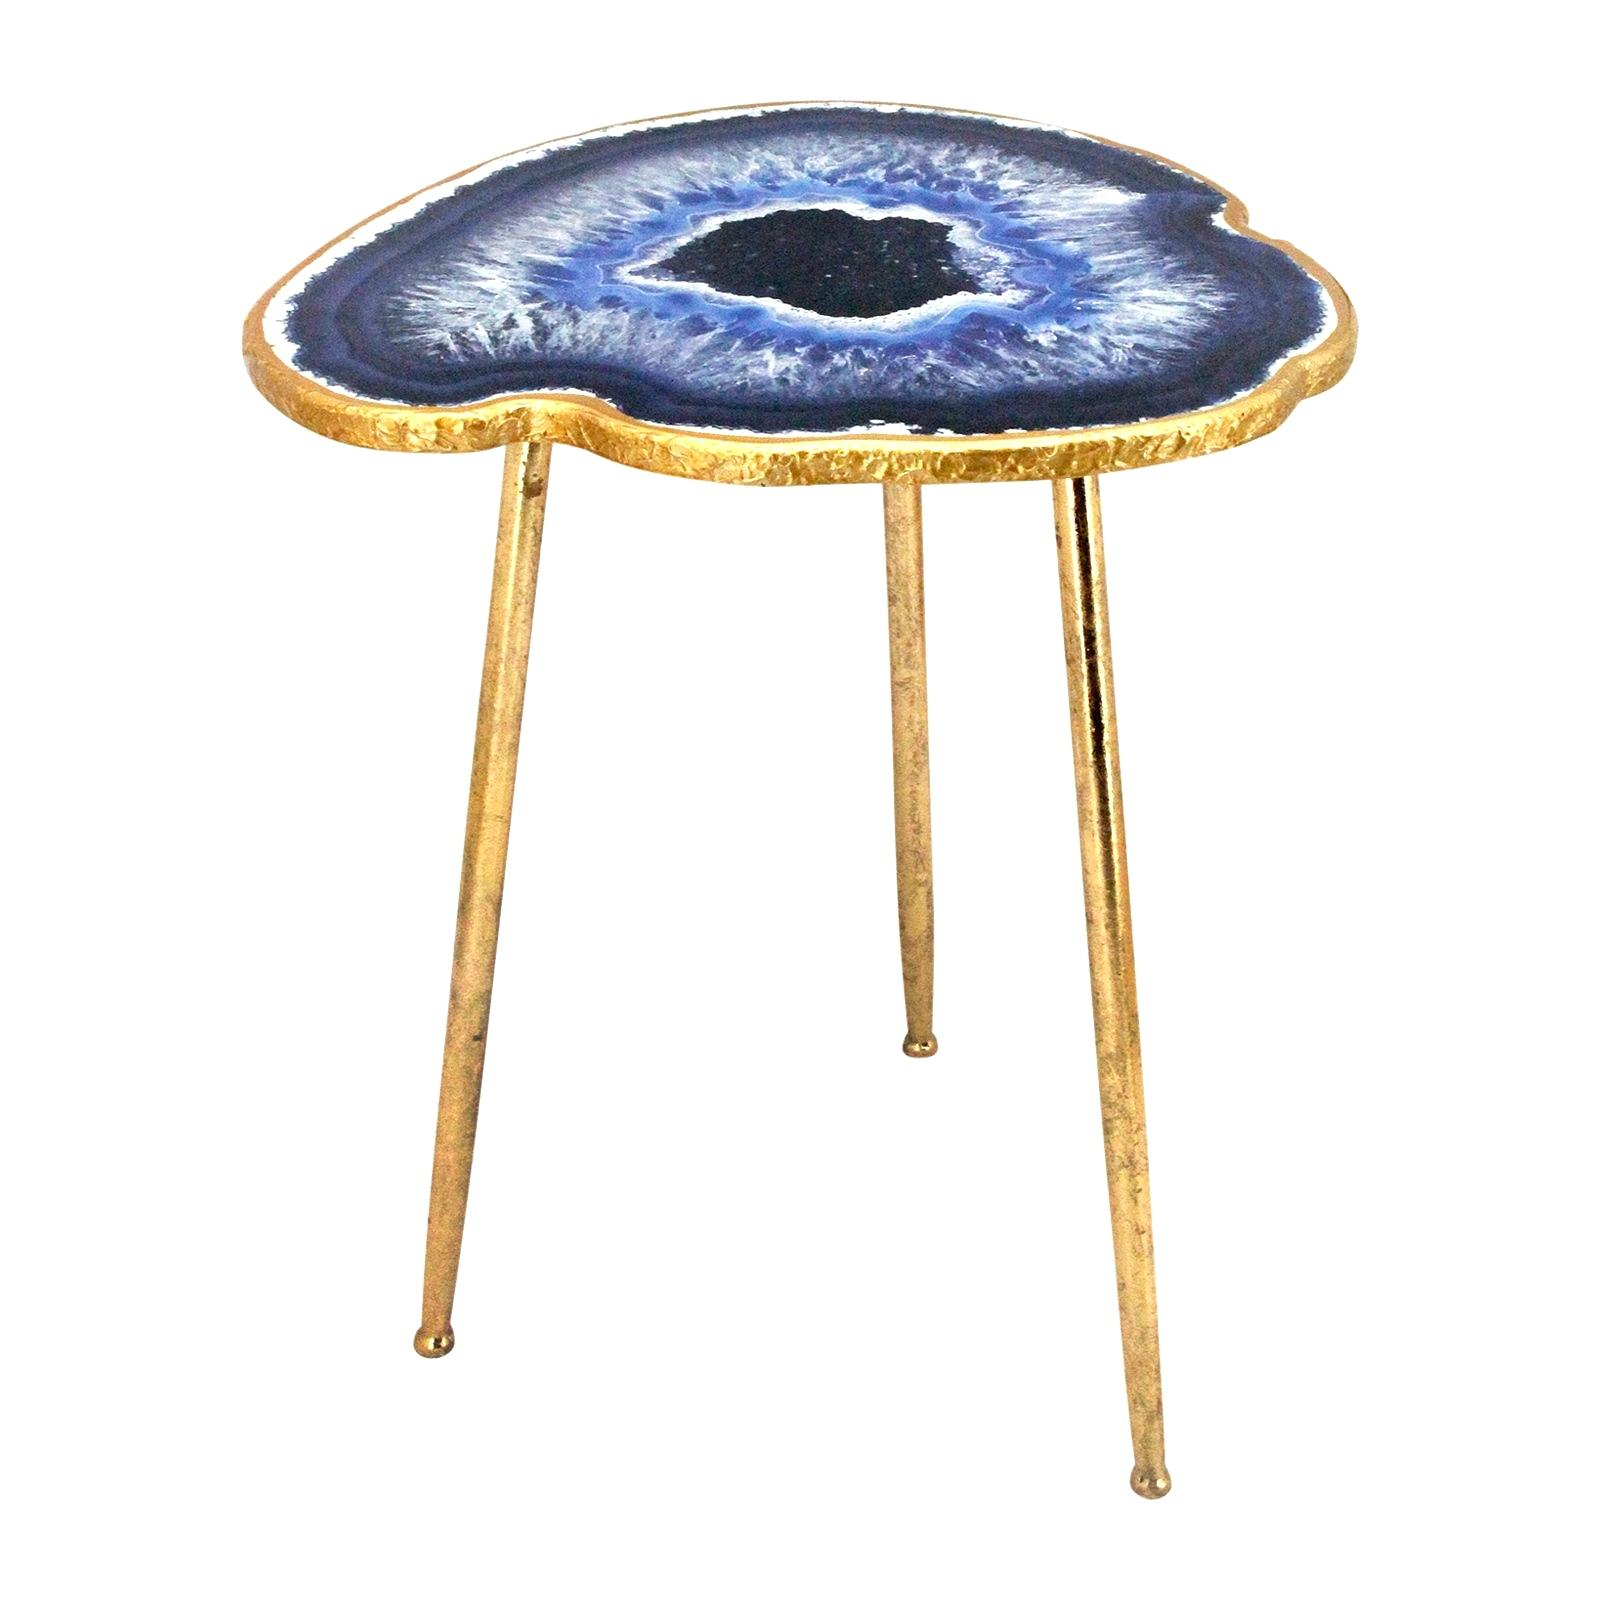 agate accent table gold and blue metal threshold glass faux plexiglass coffee top tablecloth for inch round lounge chairs end with charging station high tables dale tiffany